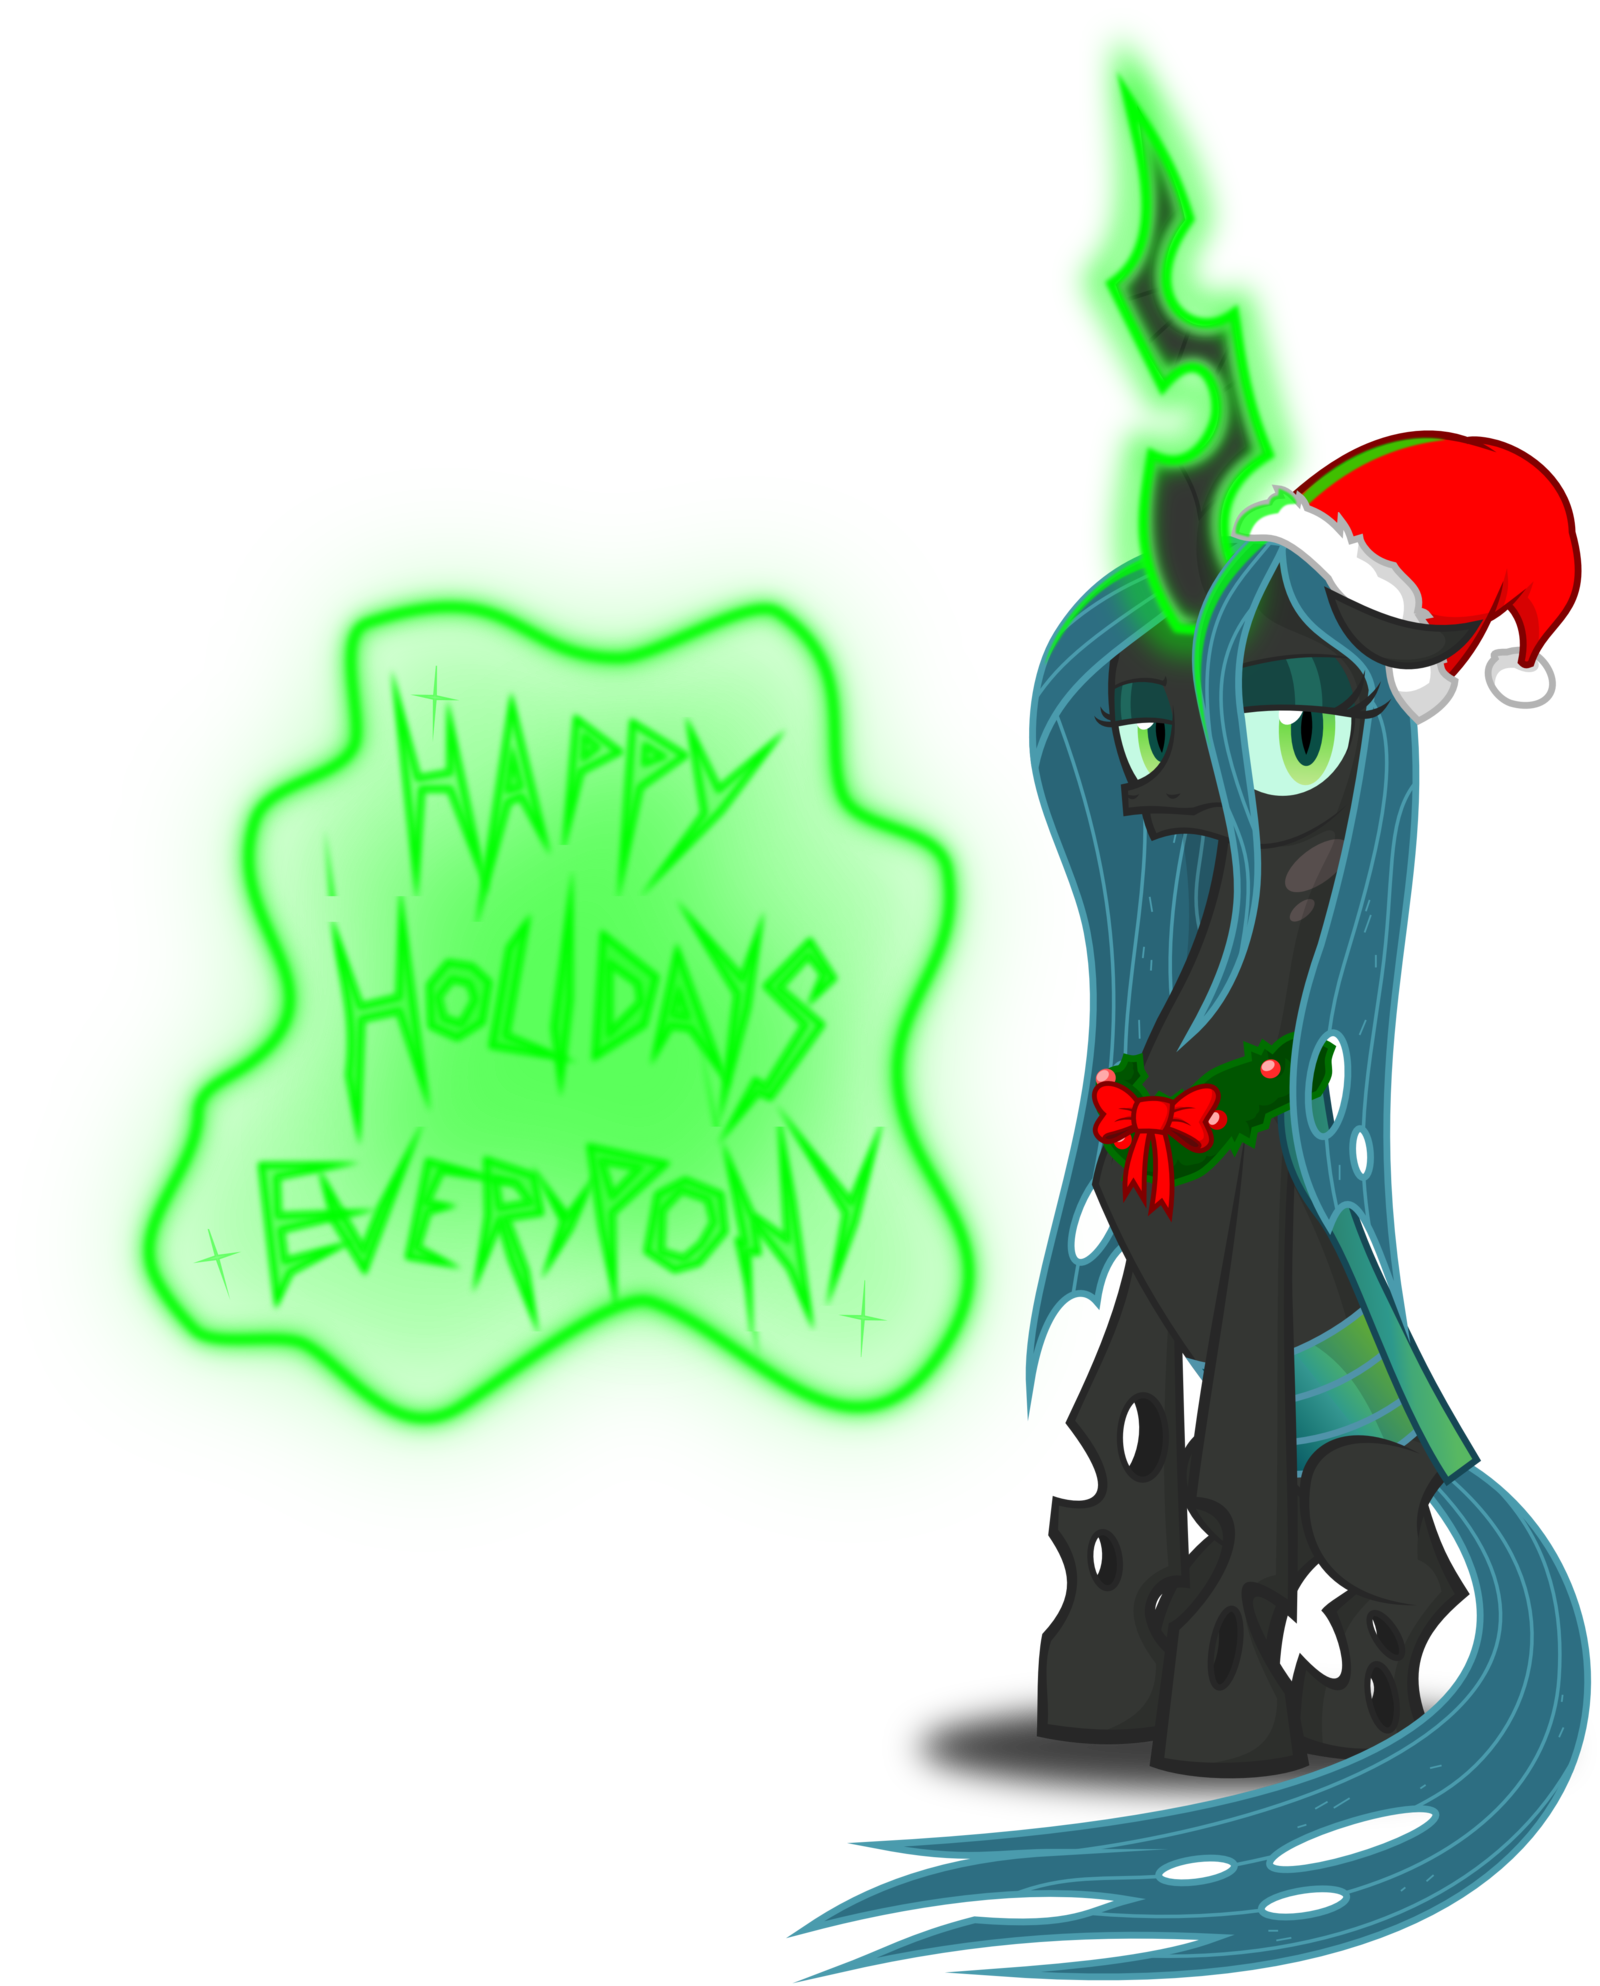 My little pony xmas coloring pages - Image Queen Chrysalis Christmas Pony By Artist Zimvader42 Png My Little Pony Fan Labor Wiki Fandom Powered By Wikia